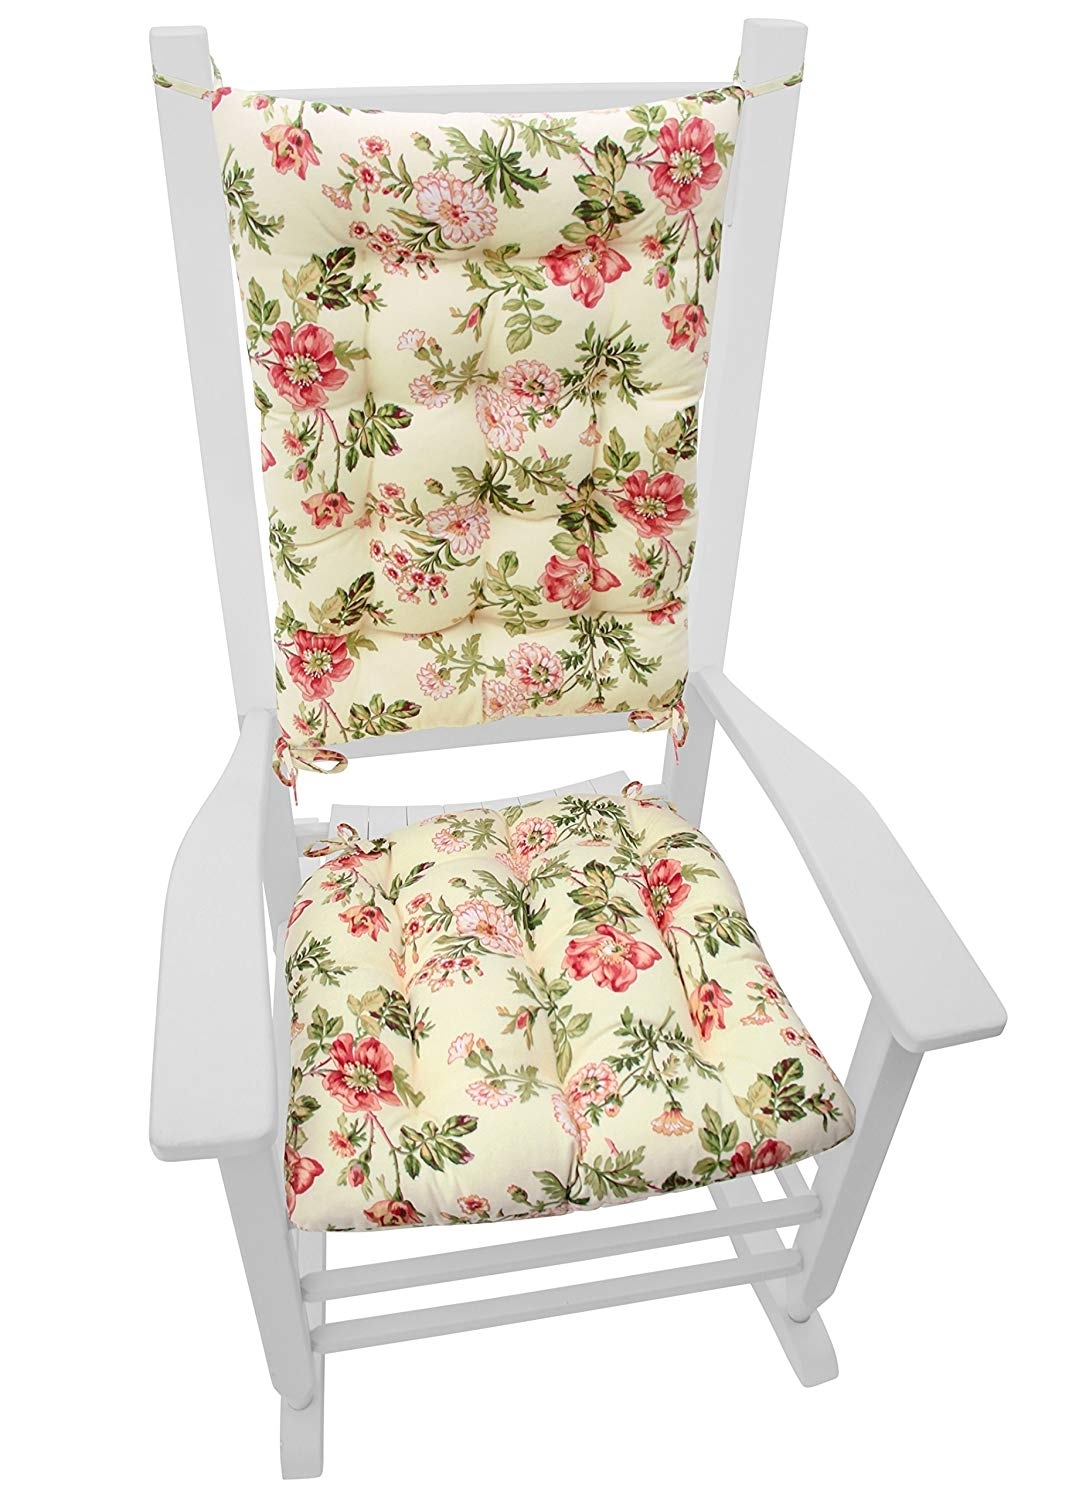 Rocking Chairs At Roses Inside Most Recent Amazon: Rocking Chair Cushions – Farrell Wild Rose Pink – Seat (View 7 of 15)